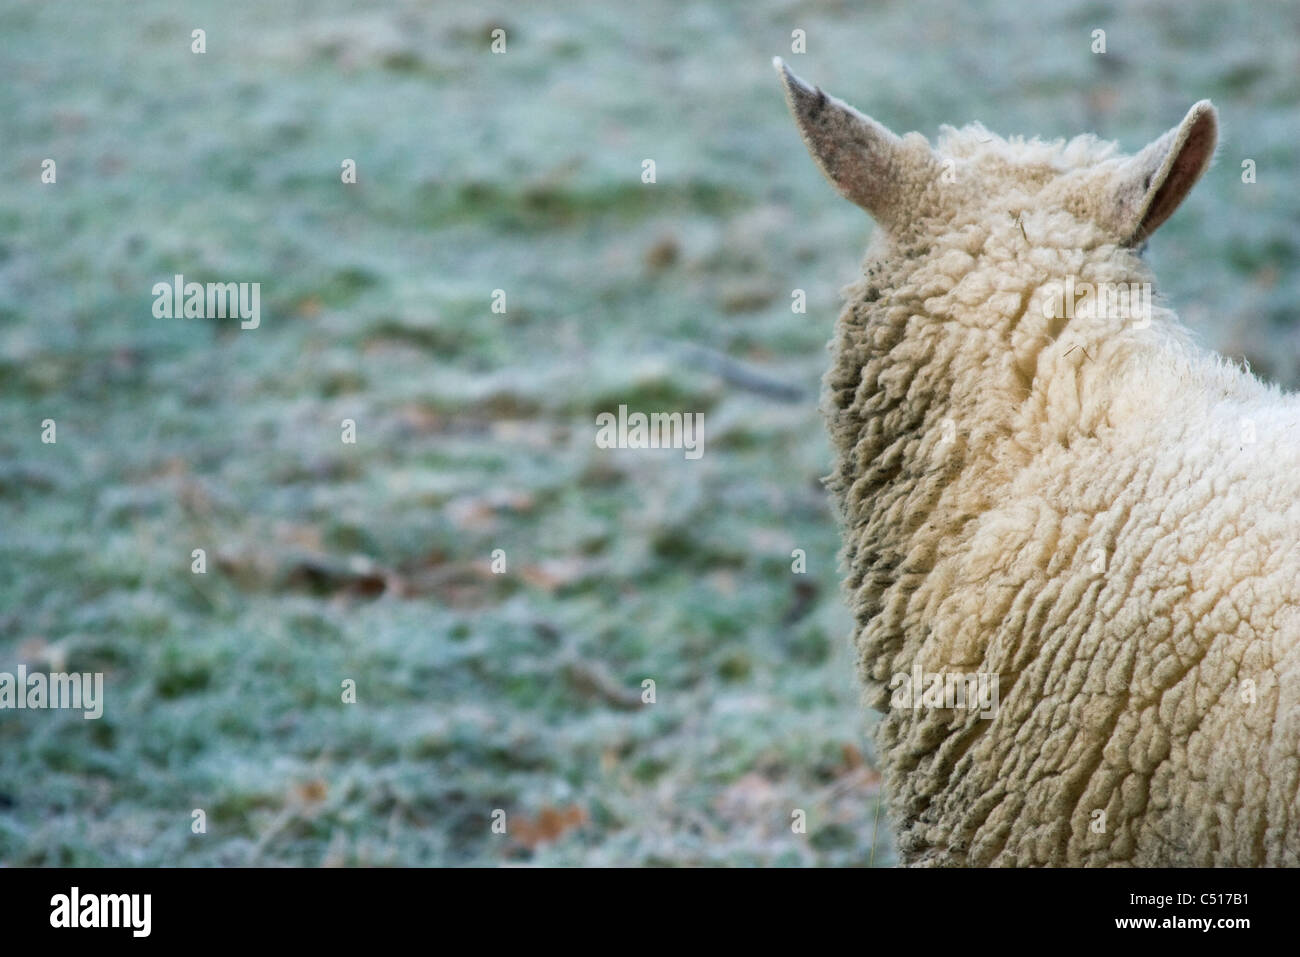 Sheep in field - Stock Image